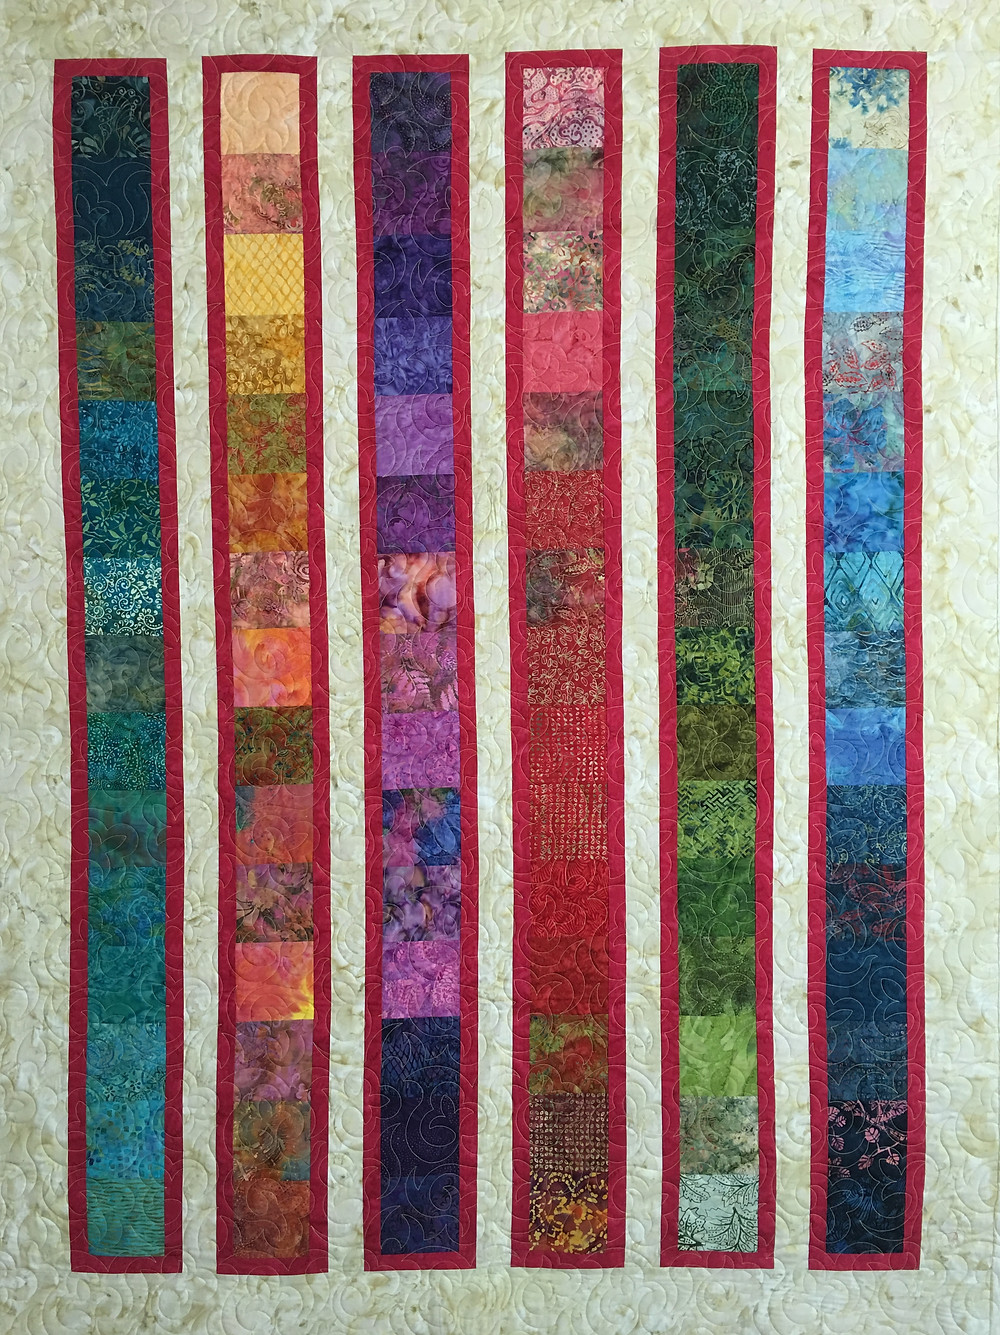 Sedona II Quilt by Peggy Krebs